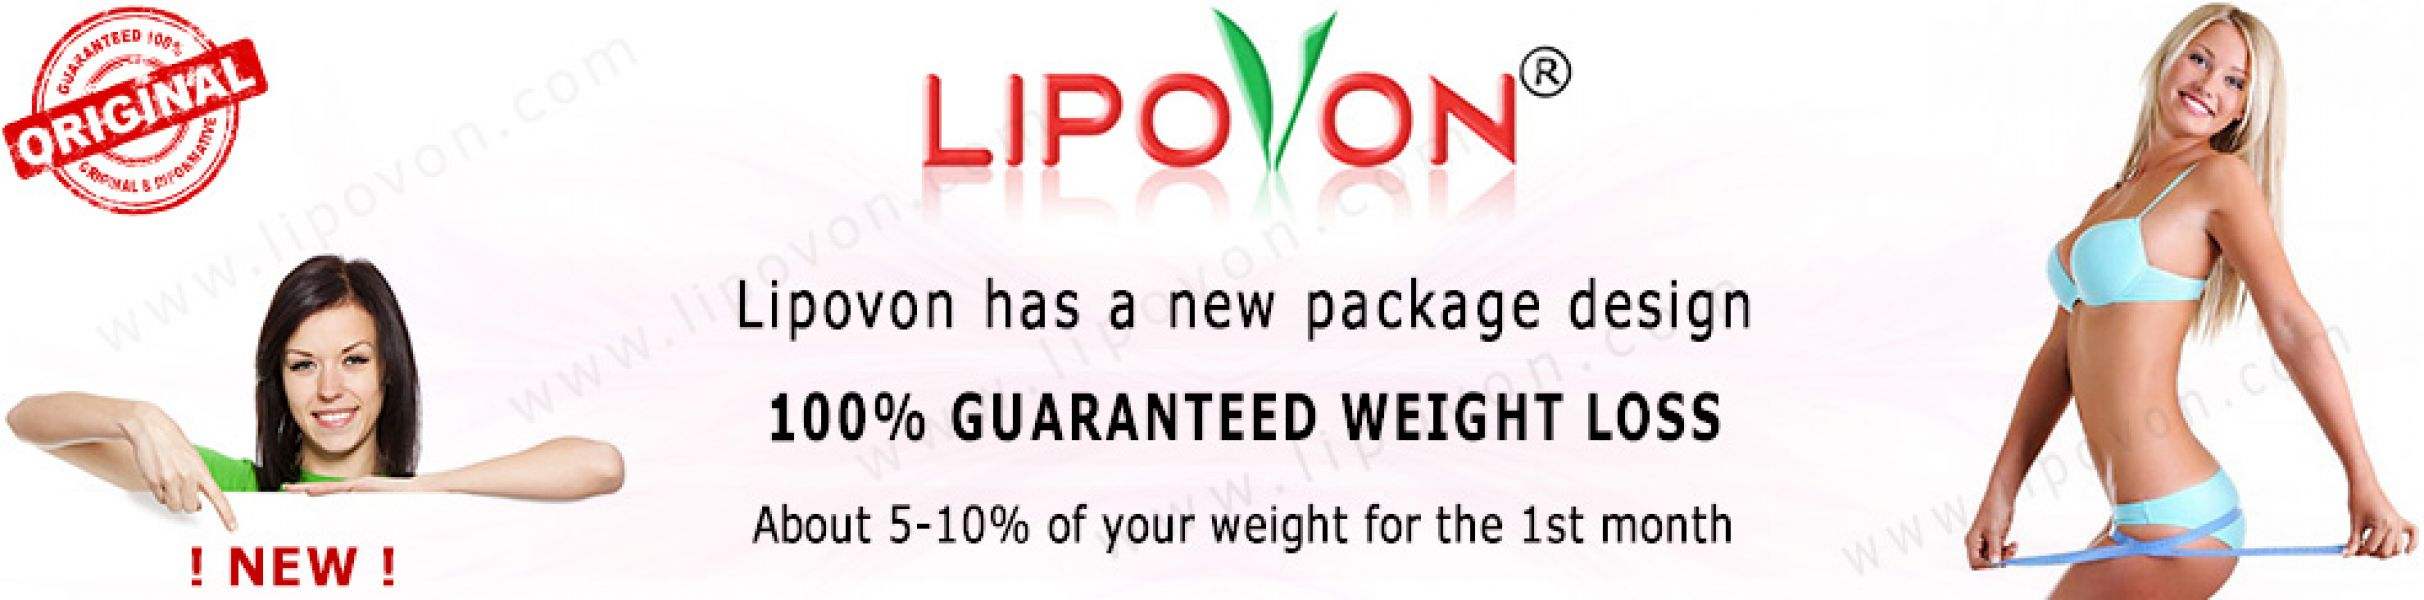 Lose weight quickly and easily with Lipovon!